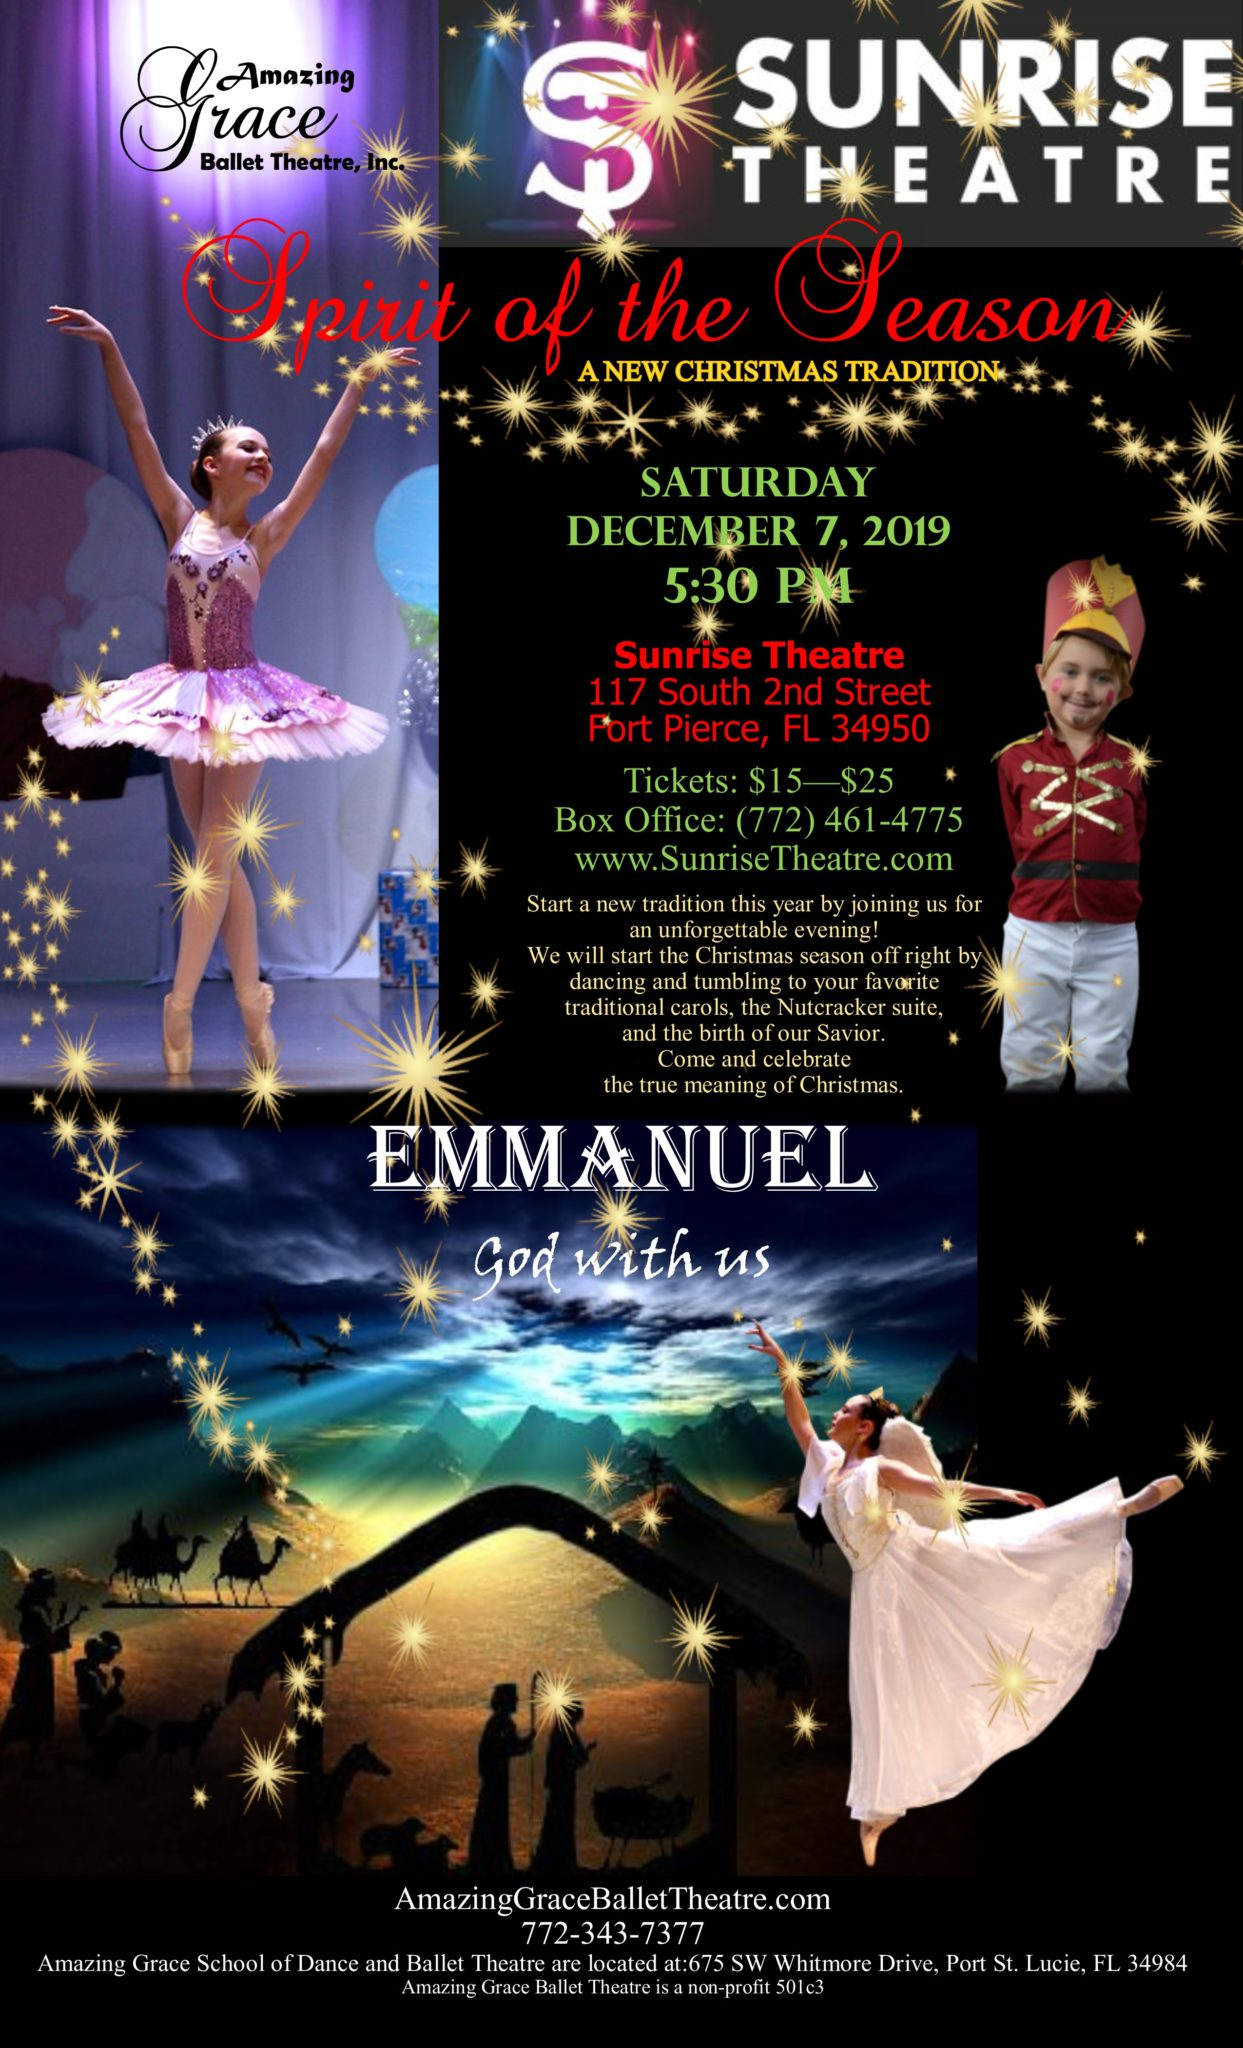 Amazing Grace Ballet Theatre, Inc. & The Students of Amazing Grace School of Dance Present:   Spirit of the Season & Emmanuel ~ God with Us!